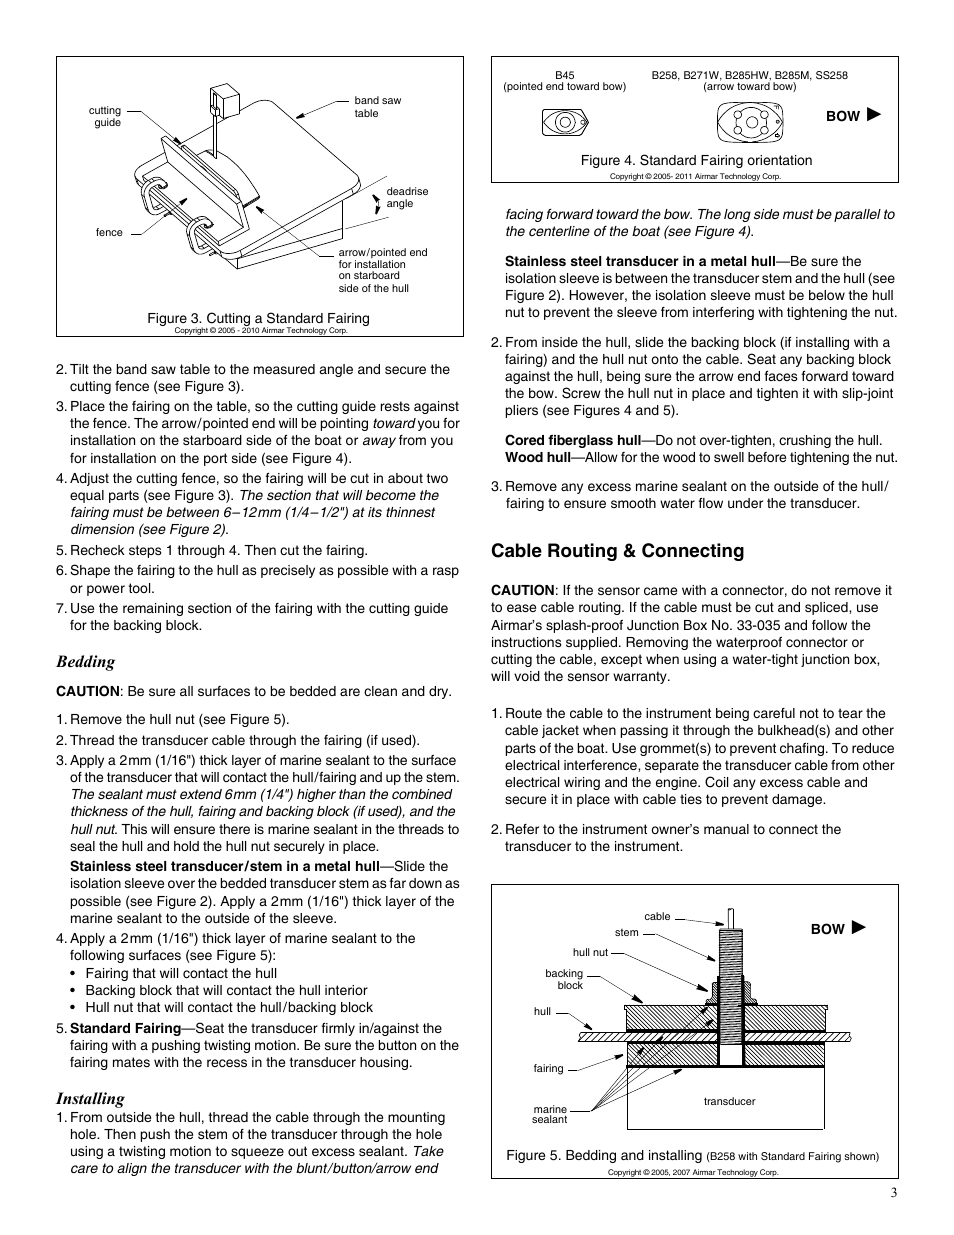 Cable Routing Connecting Bedding Installing Airmar B45 User Band Saw Wiring Diagrams Manual Page 3 4